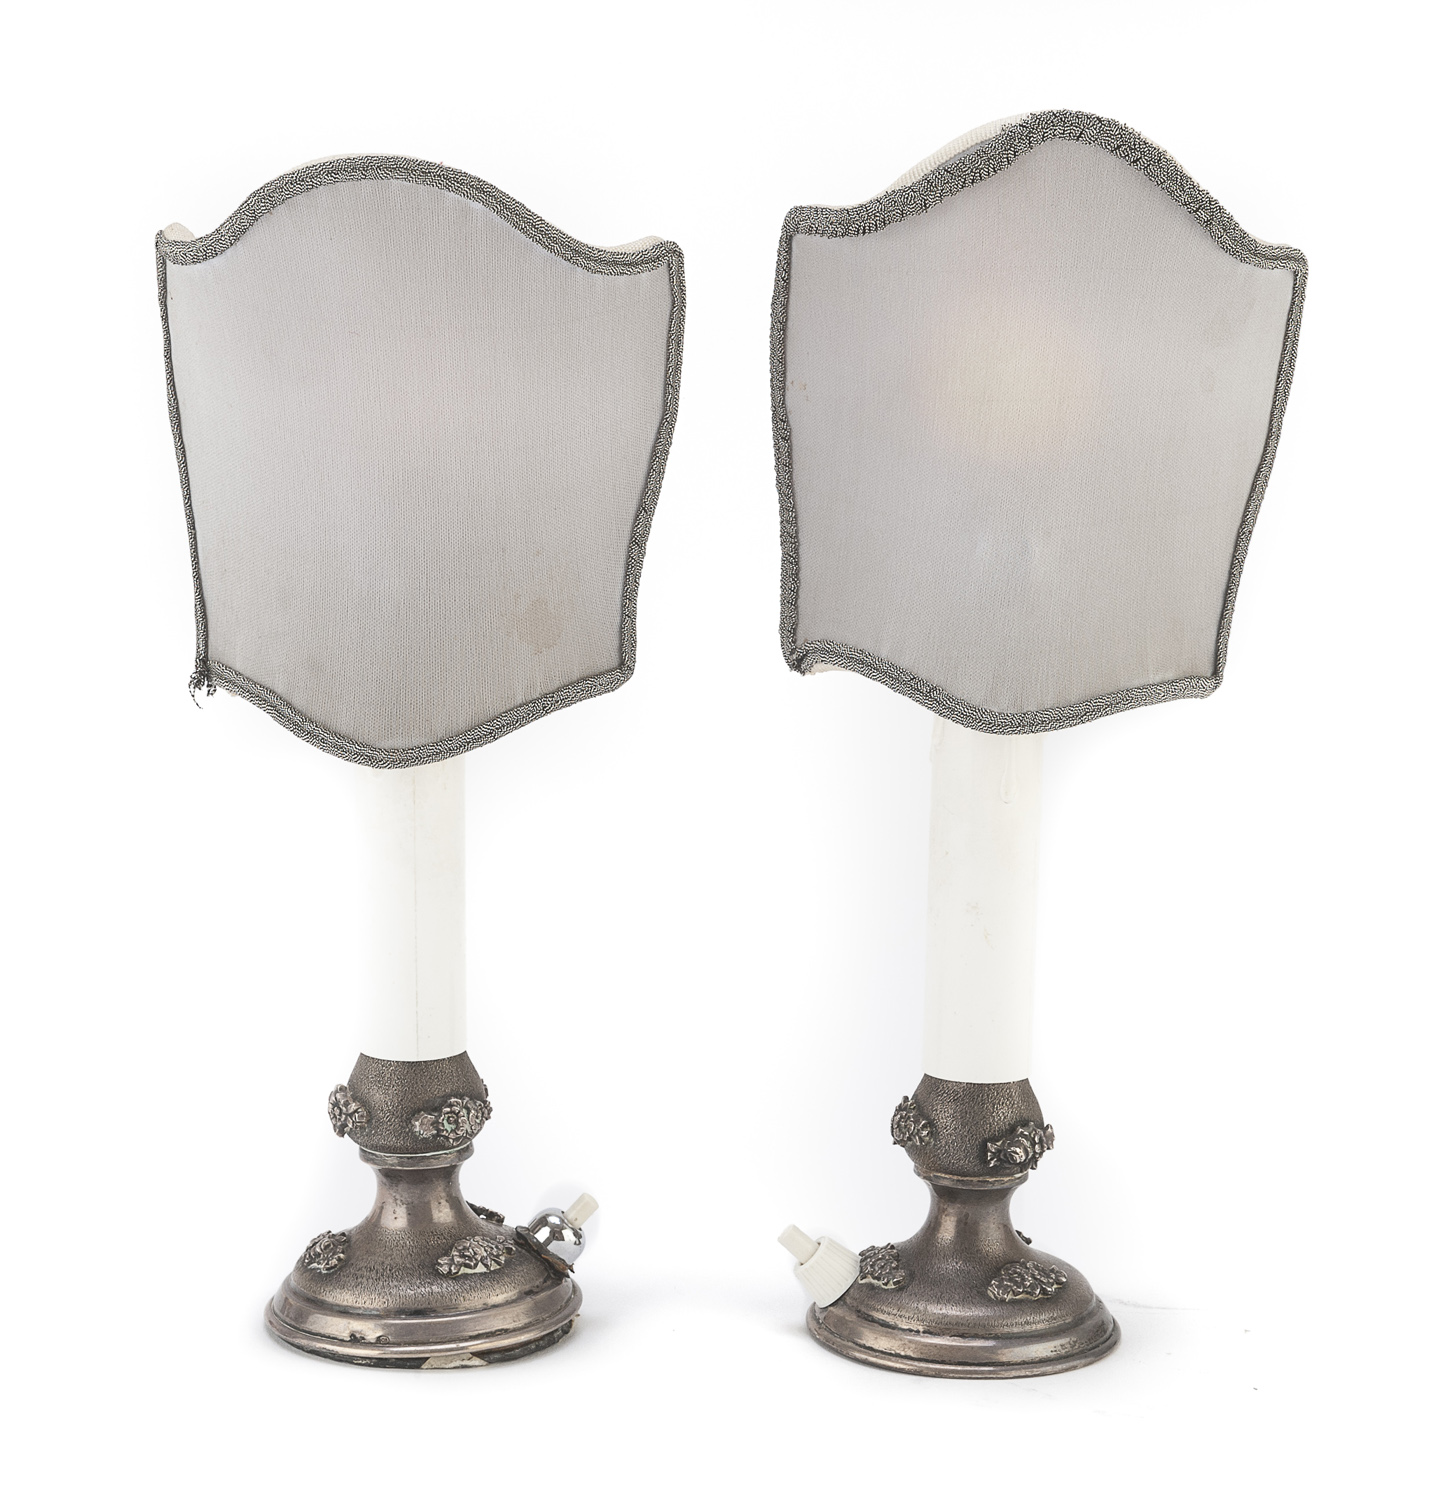 PAIR OF SMALL SILVER LAMPS ITALY 20th CENTURY